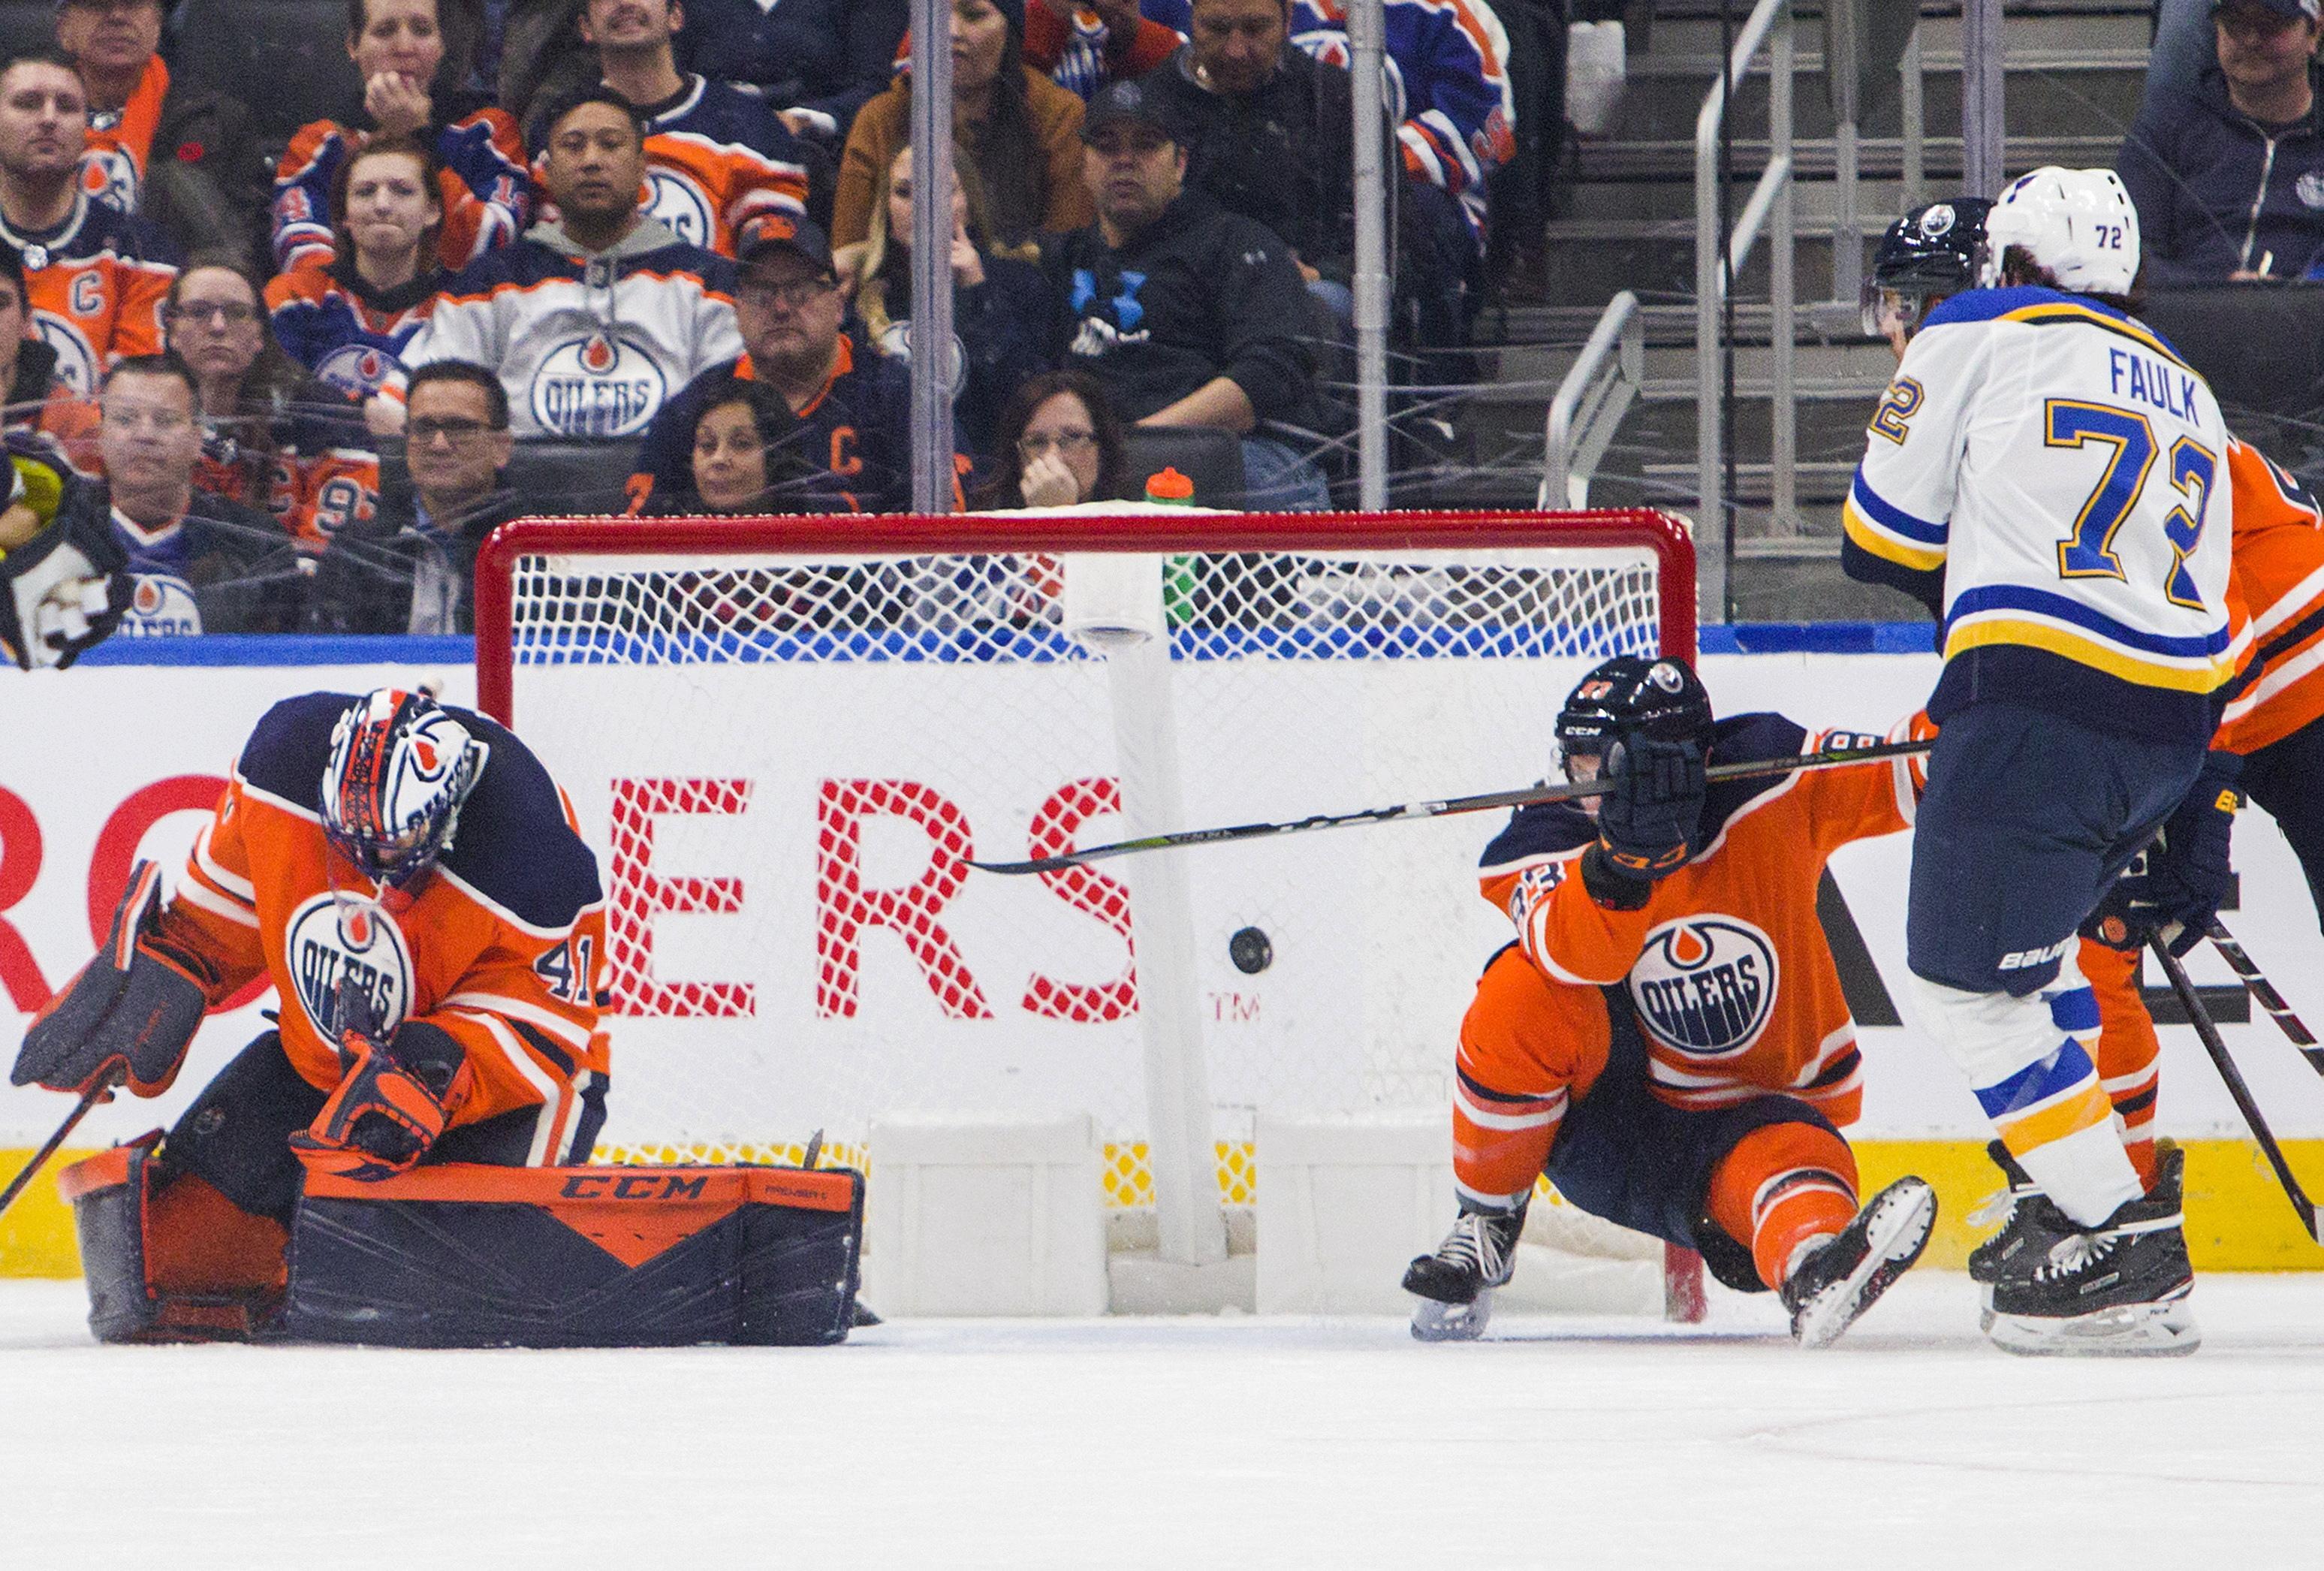 National Hockey League roundup: Blues win 6th straight beating Oilers 5-2